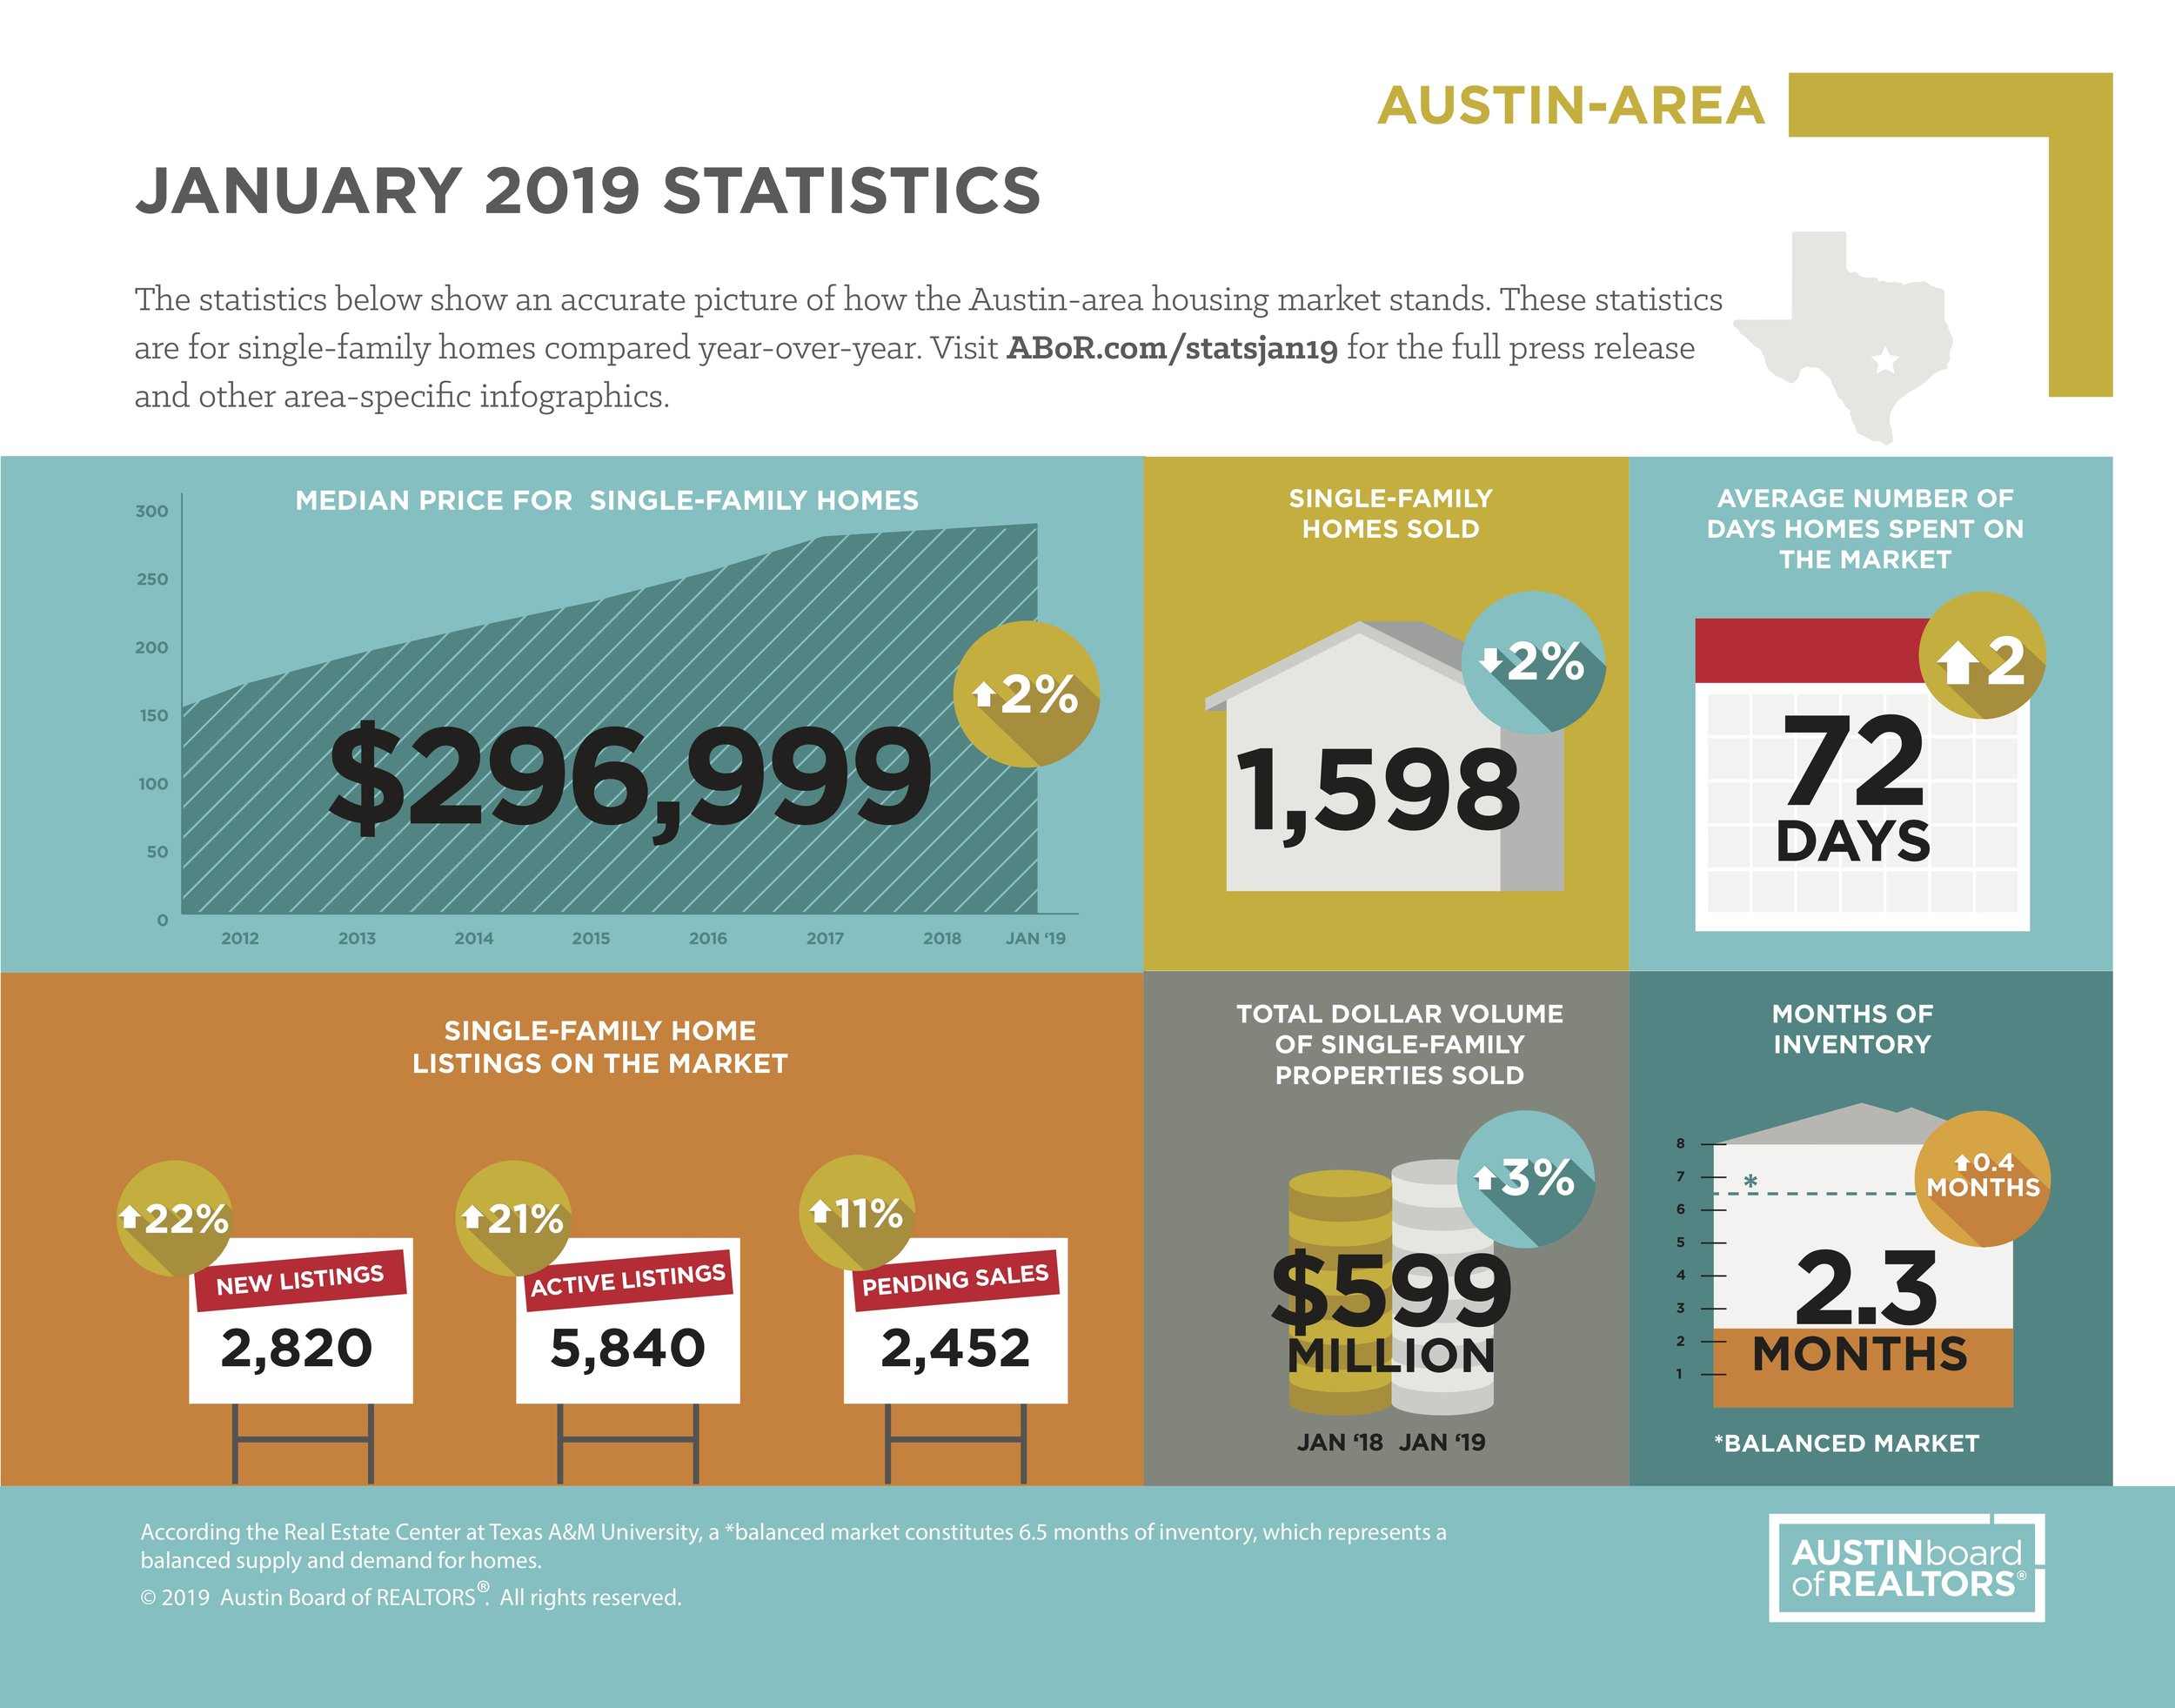 Source: Austin Board of Realtors